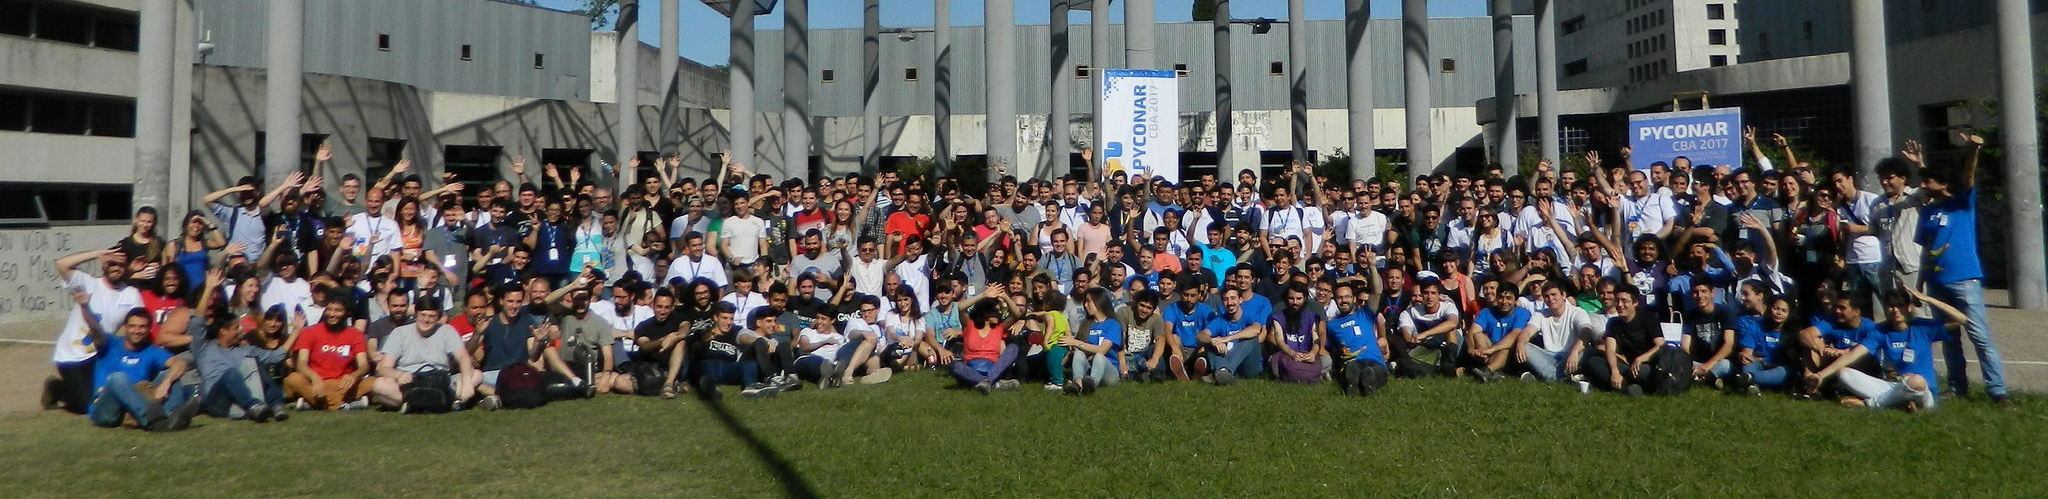 PyCon Argentina 2017 feature image